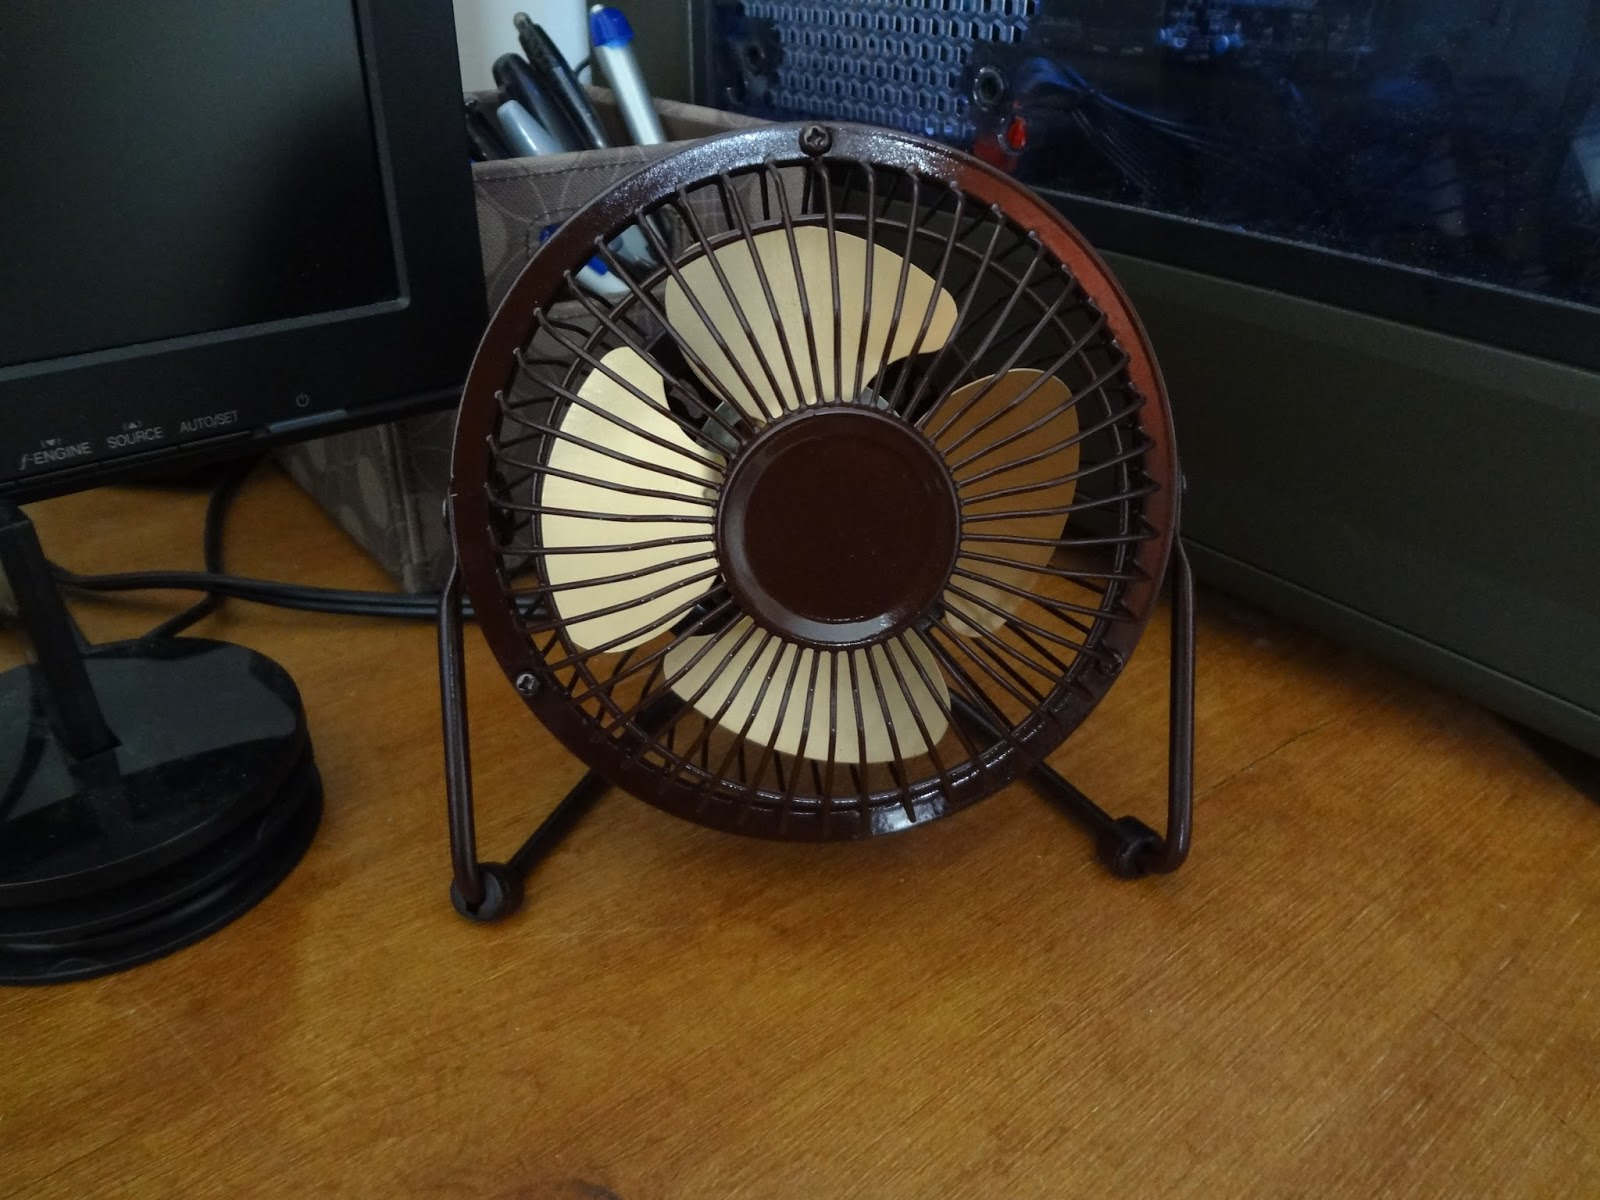 Table Fans At Walmart : New desk fan repainted home tech dad a s